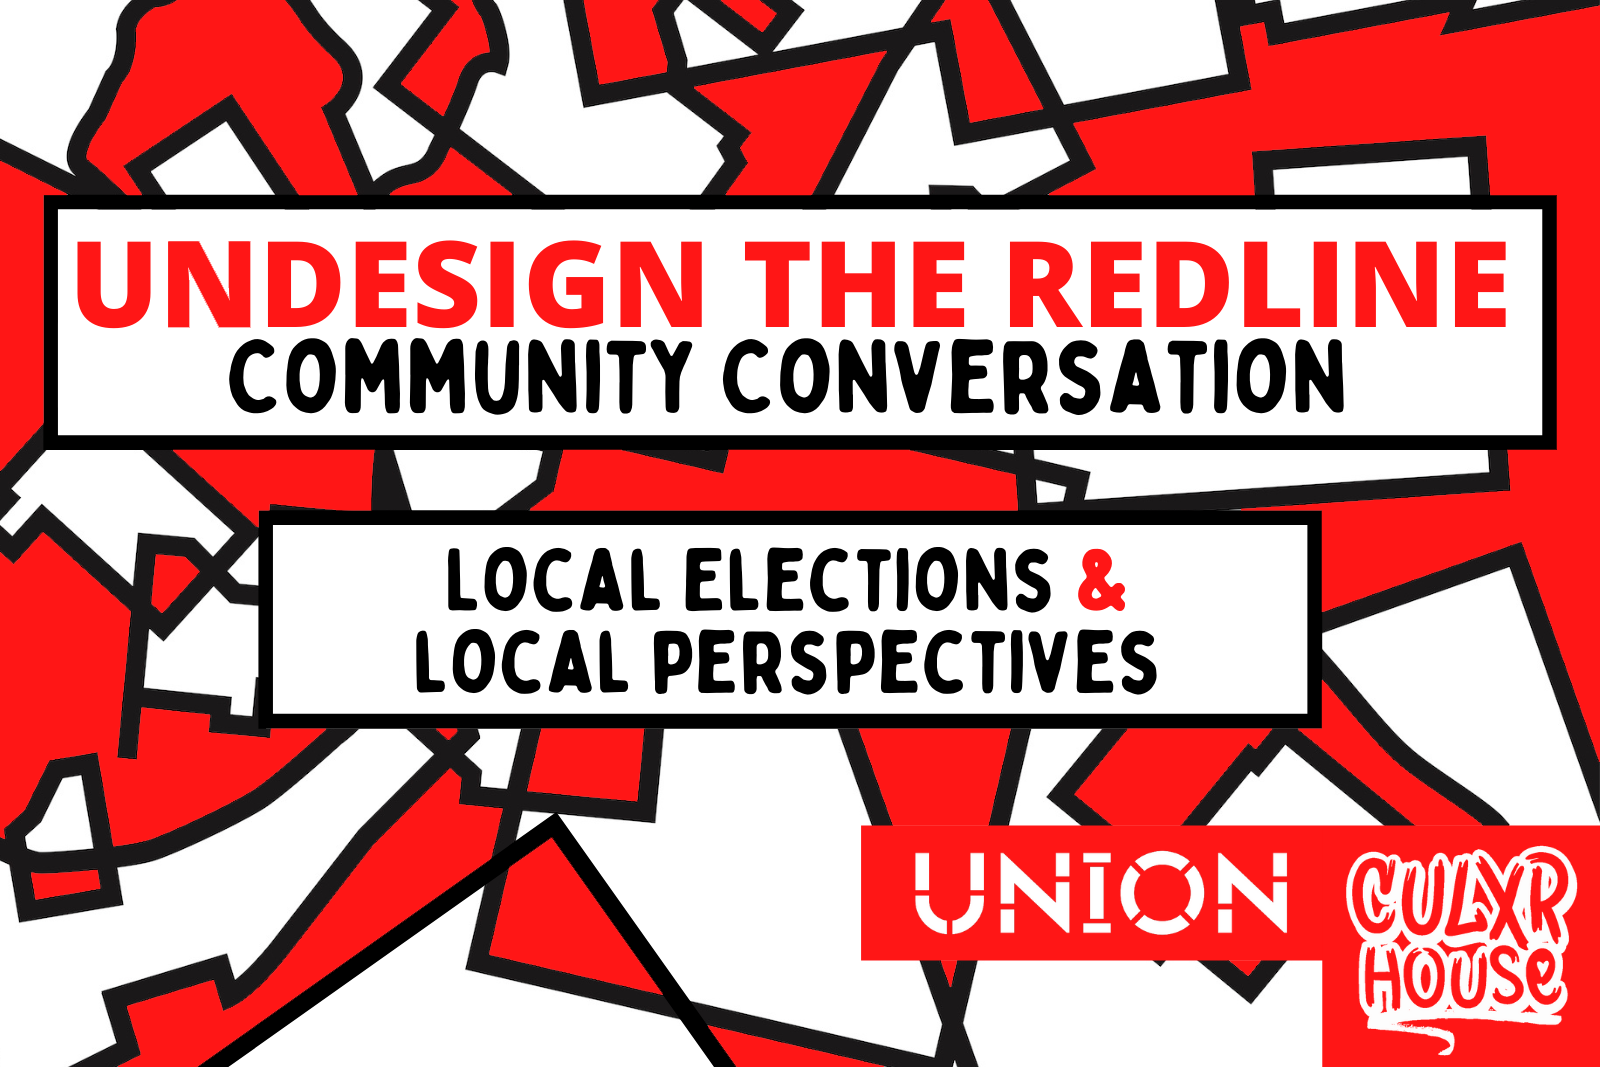 Homepage Undesign the Redline Community Conversations Local Elections and Community Organizing against a red pattern background the Union and Culxr House logos are in the bottom corner